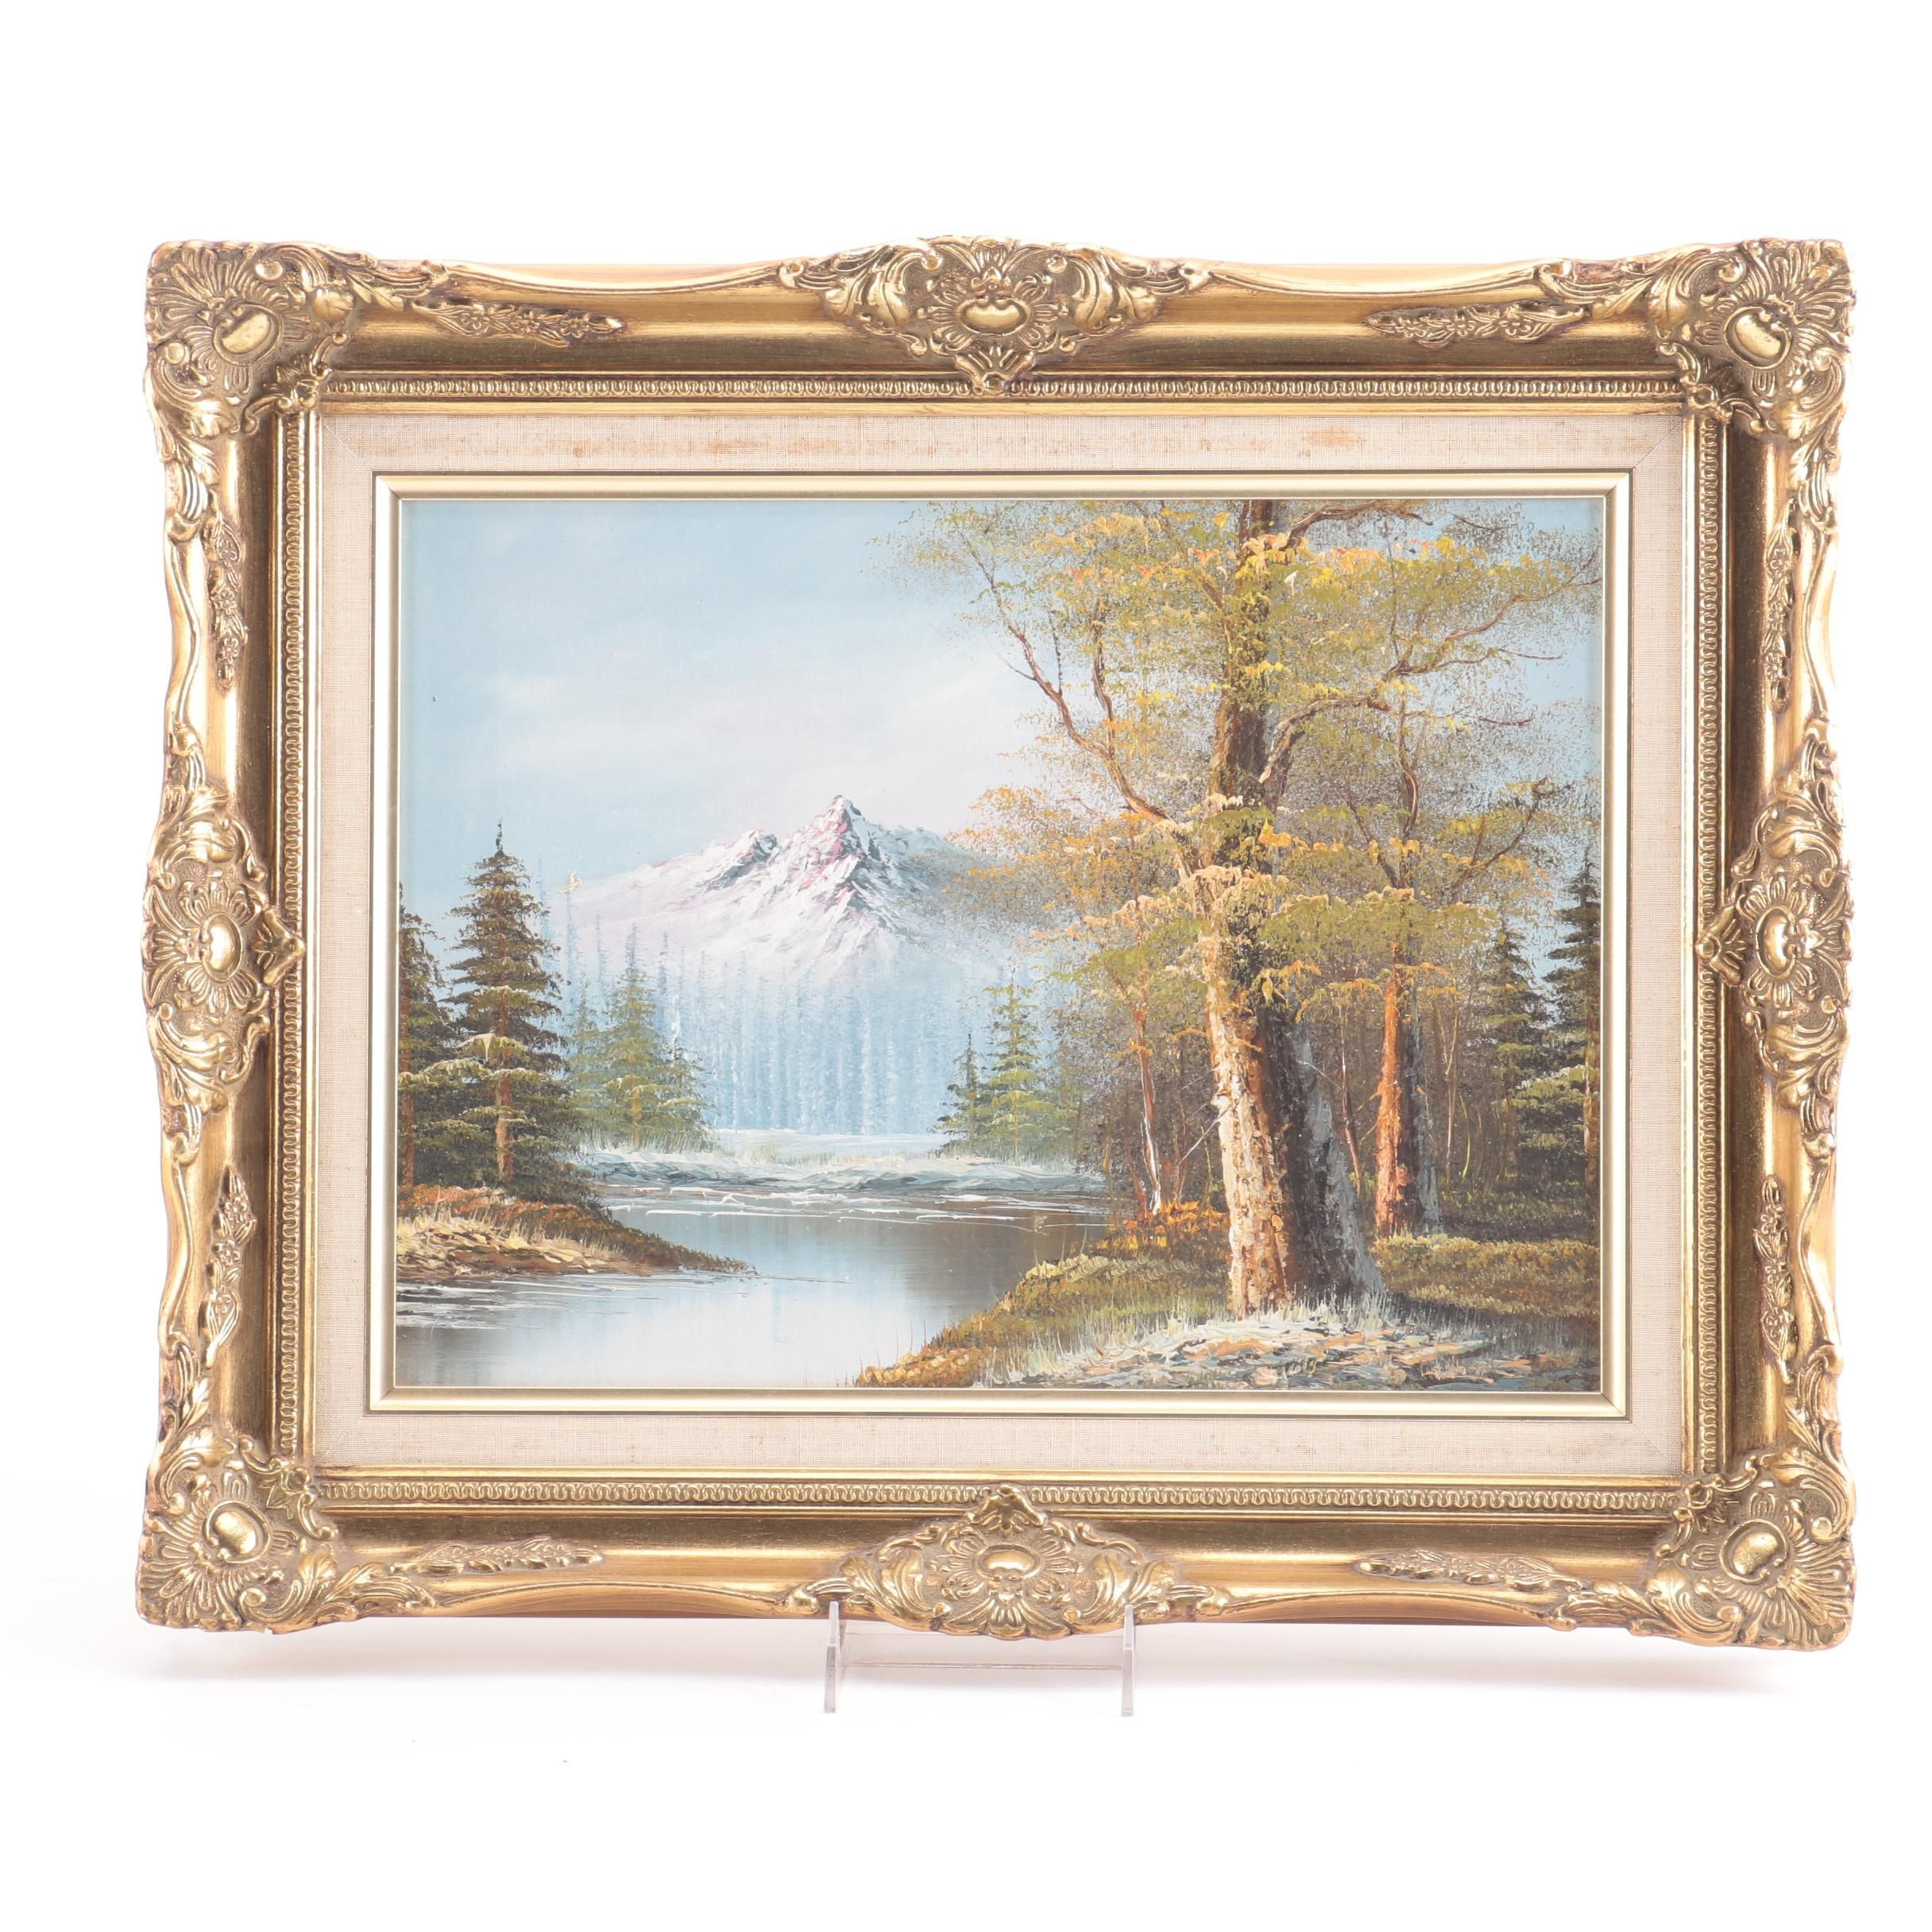 Oil Painting on Canvas of Mountain Landscape Scene